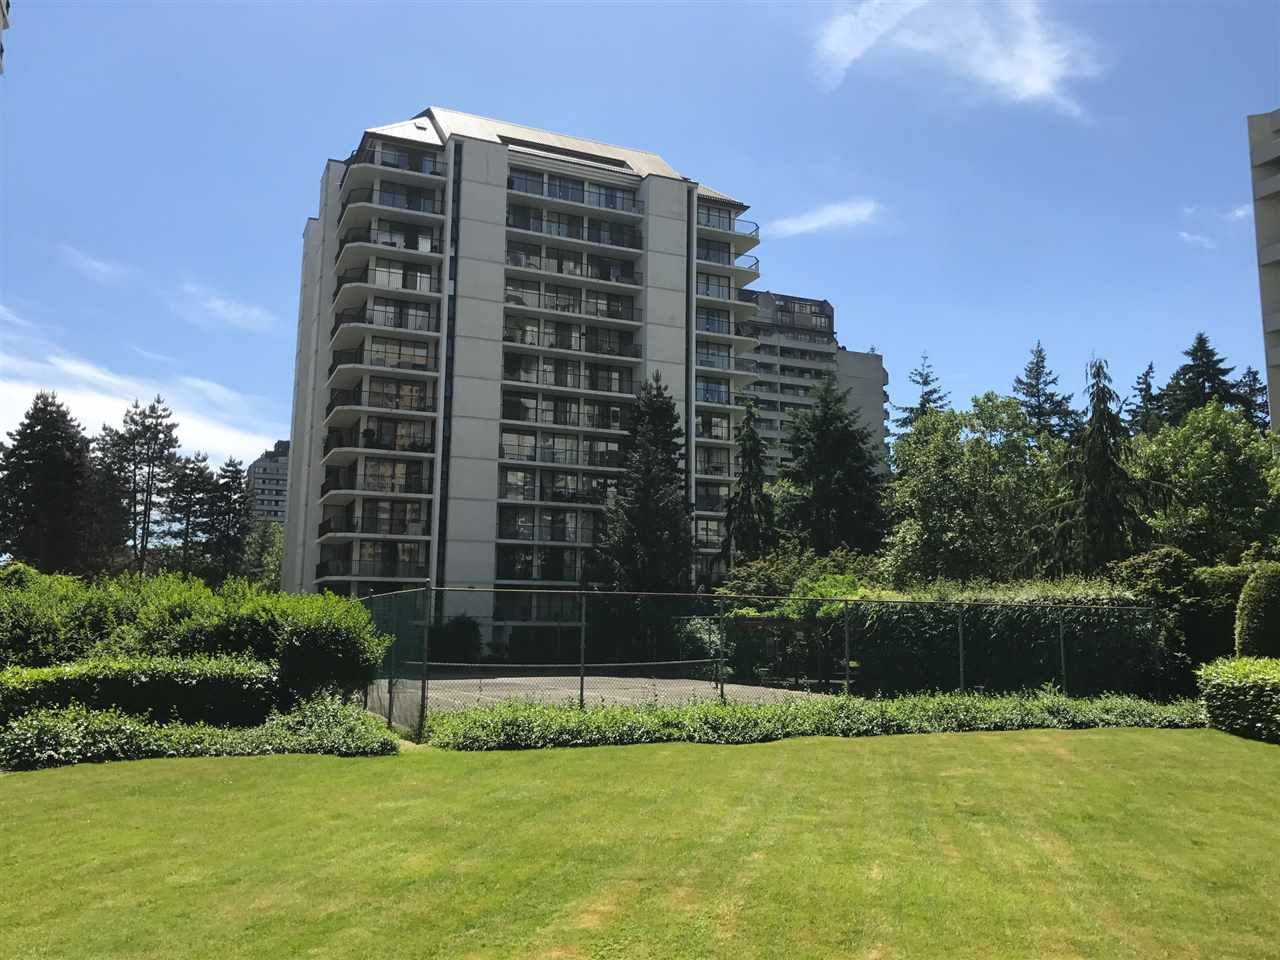 """Main Photo: 1007 4165 MAYWOOD Street in Burnaby: Metrotown Condo for sale in """"PLACE ON THE PARK"""" (Burnaby South)  : MLS®# R2182230"""